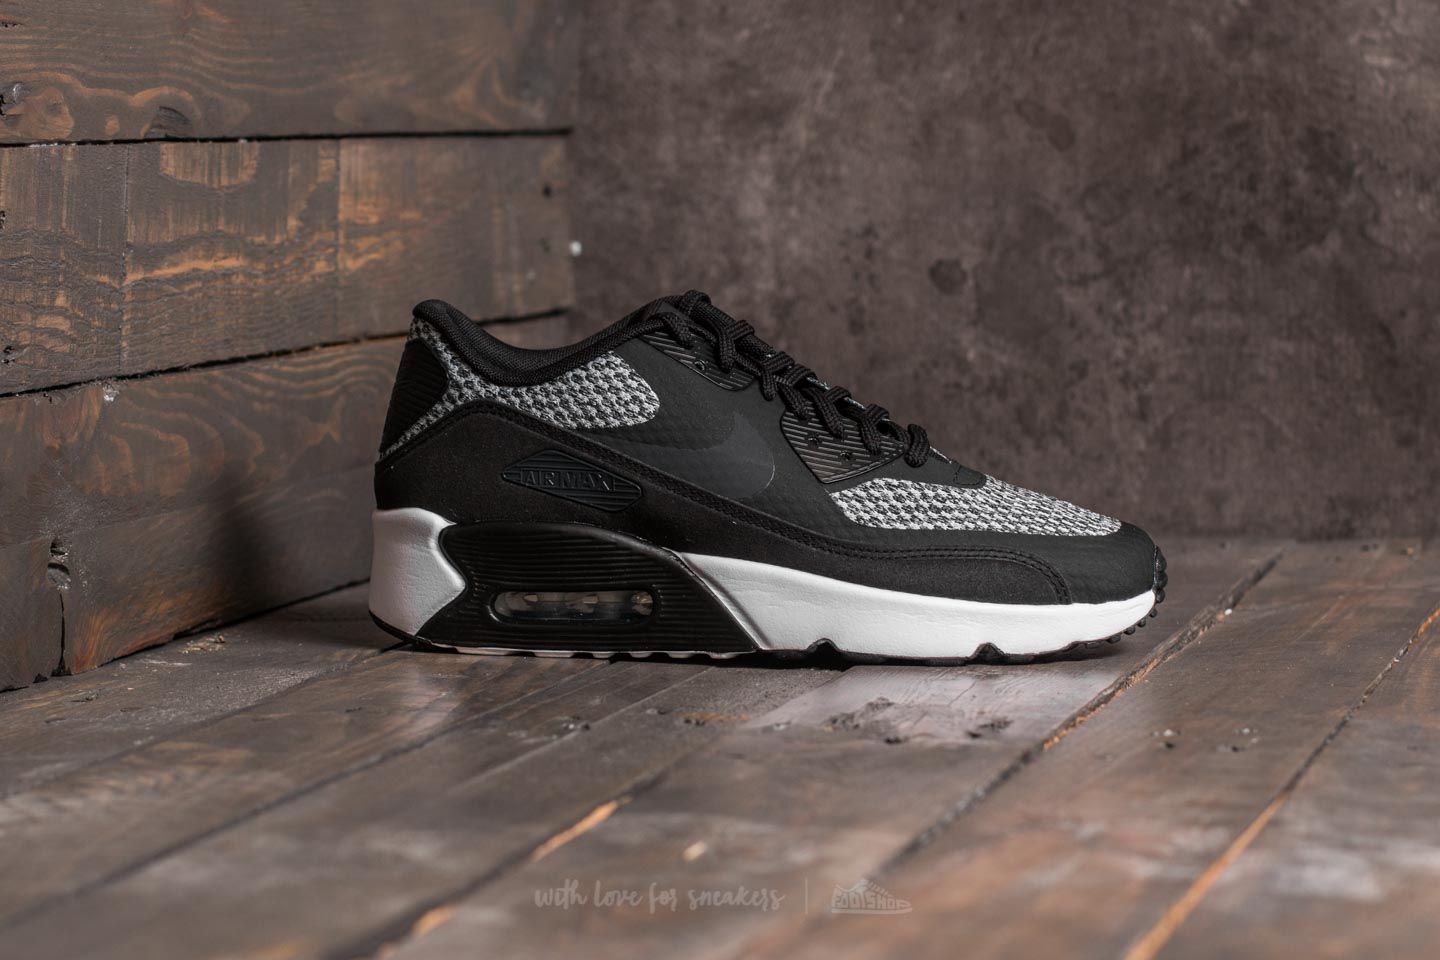 best service 8afa0 fffe9 official store nike air max 90 ultra 2.0 se gs black anthracite cool grey  98067 a03f3